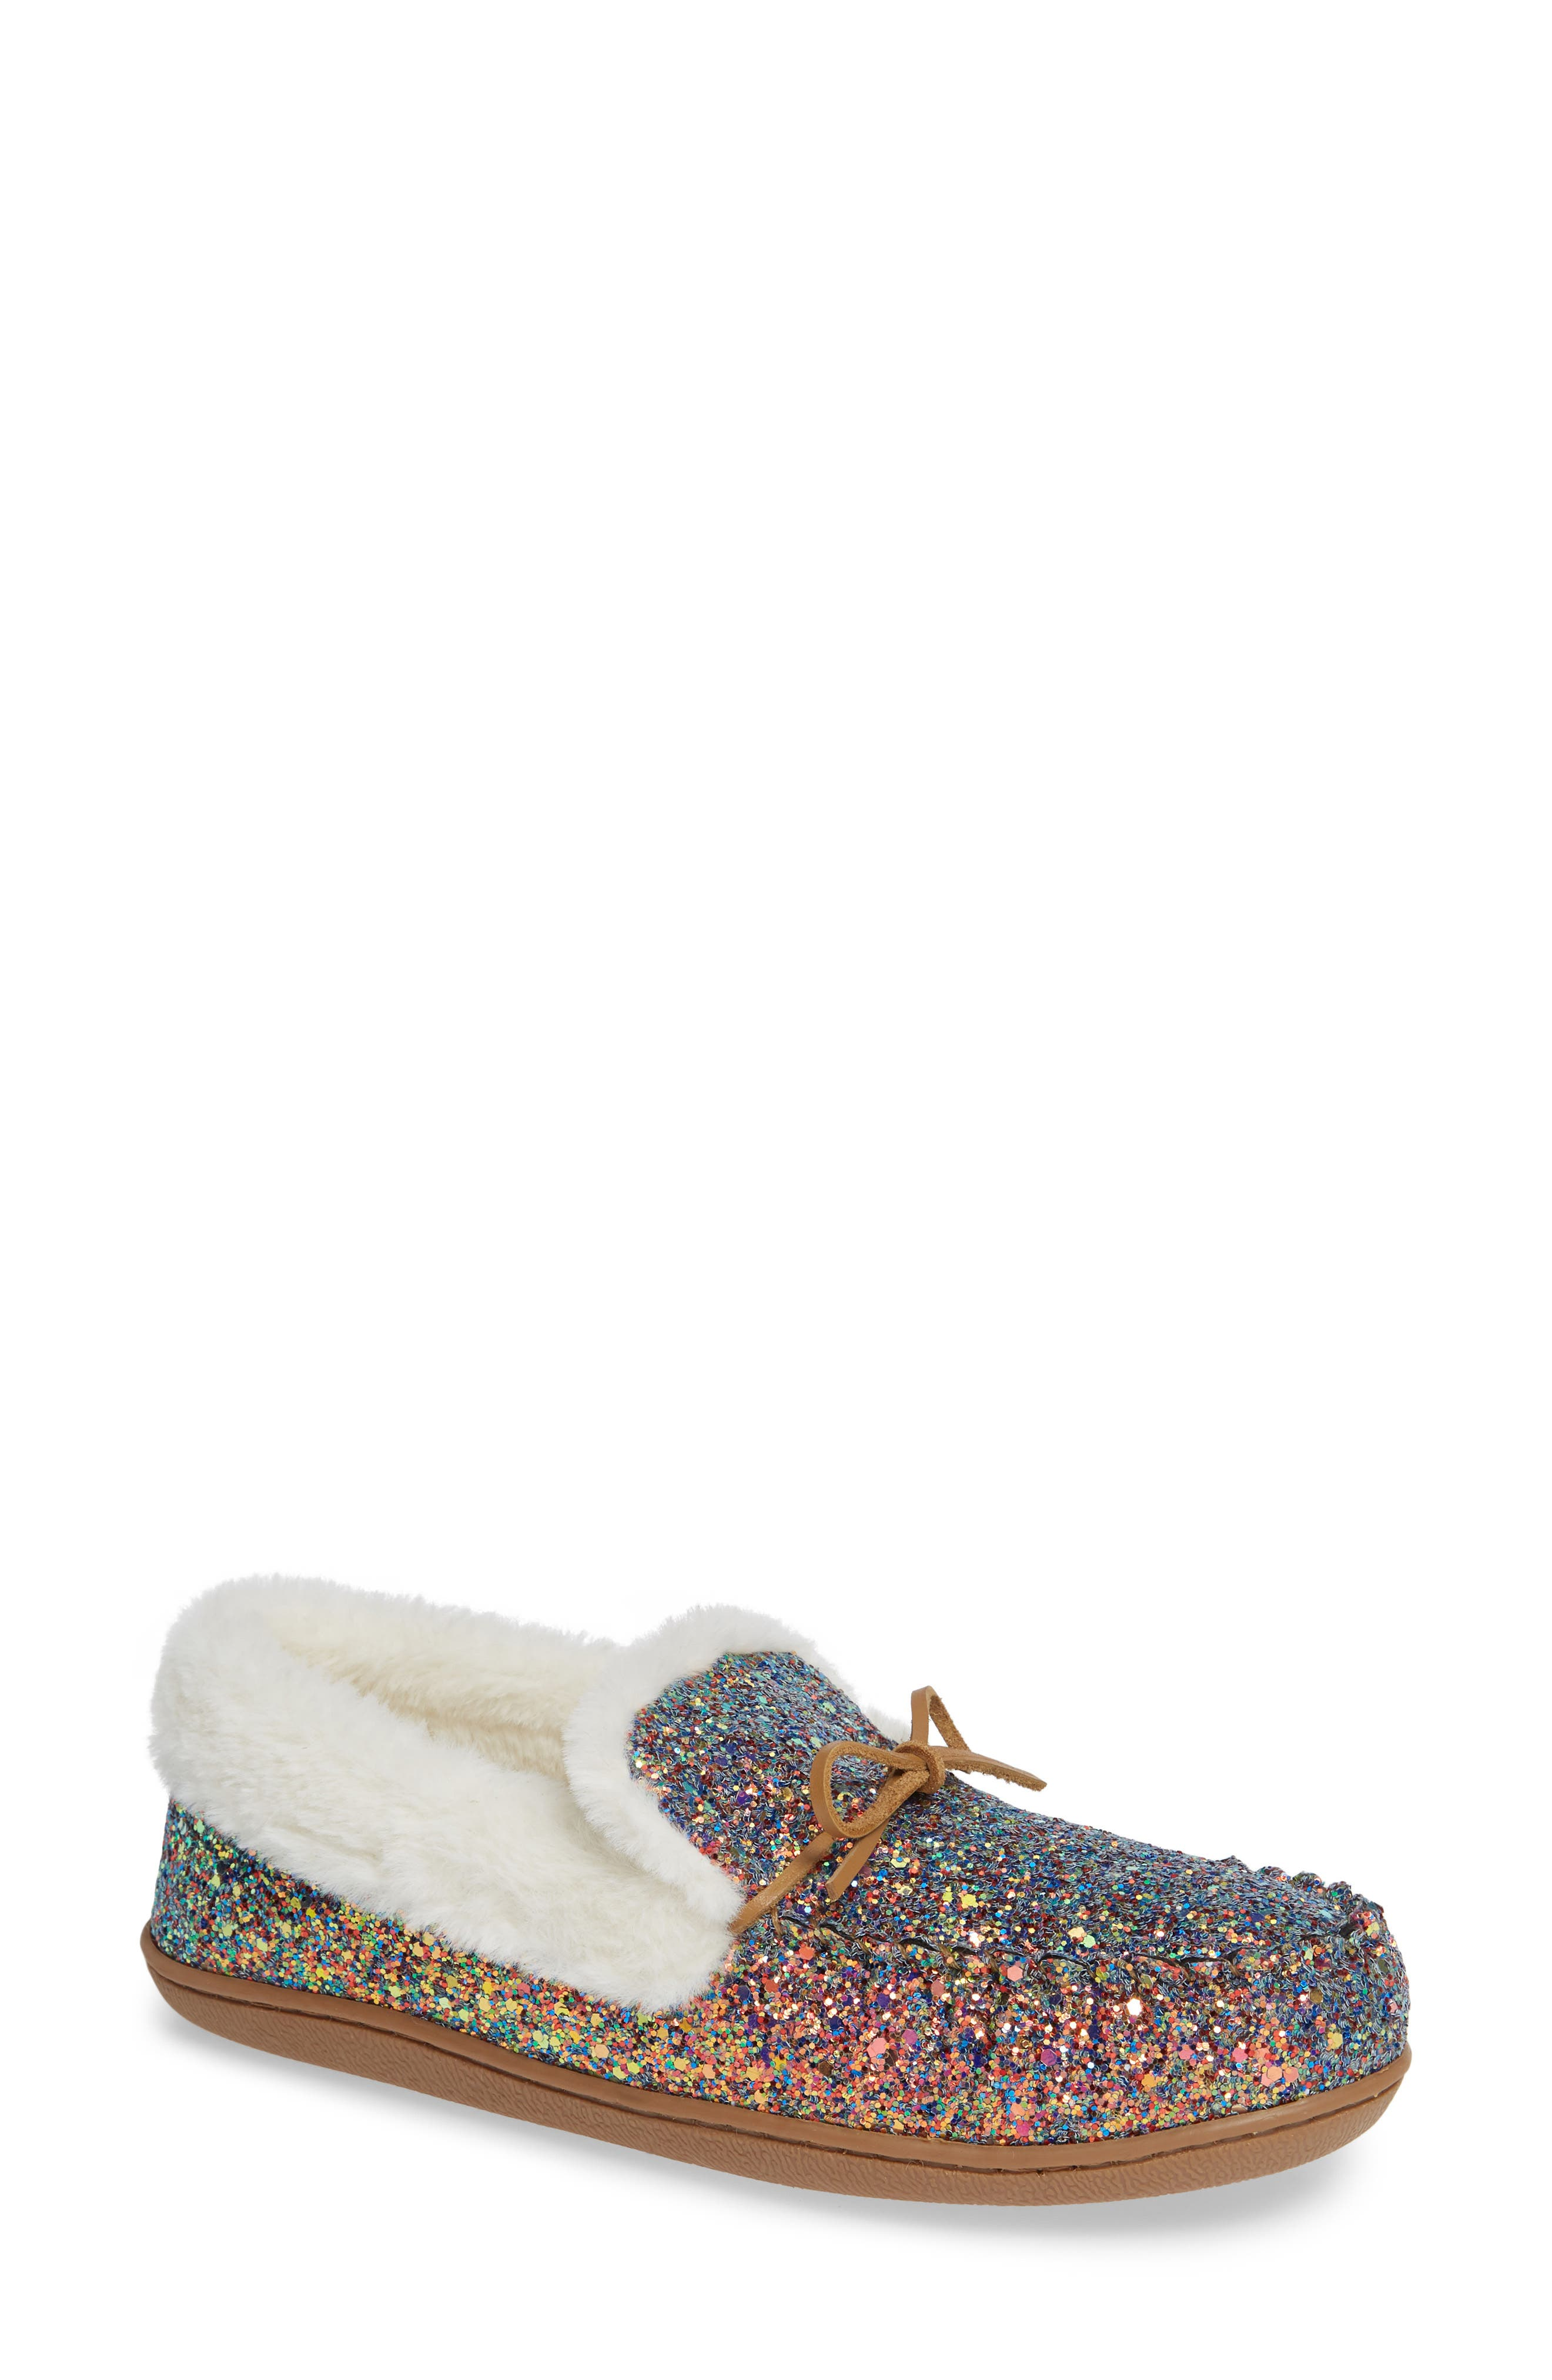 Poppy Moc Slipper,                             Main thumbnail 1, color,                             PINK MULTI GLITTER